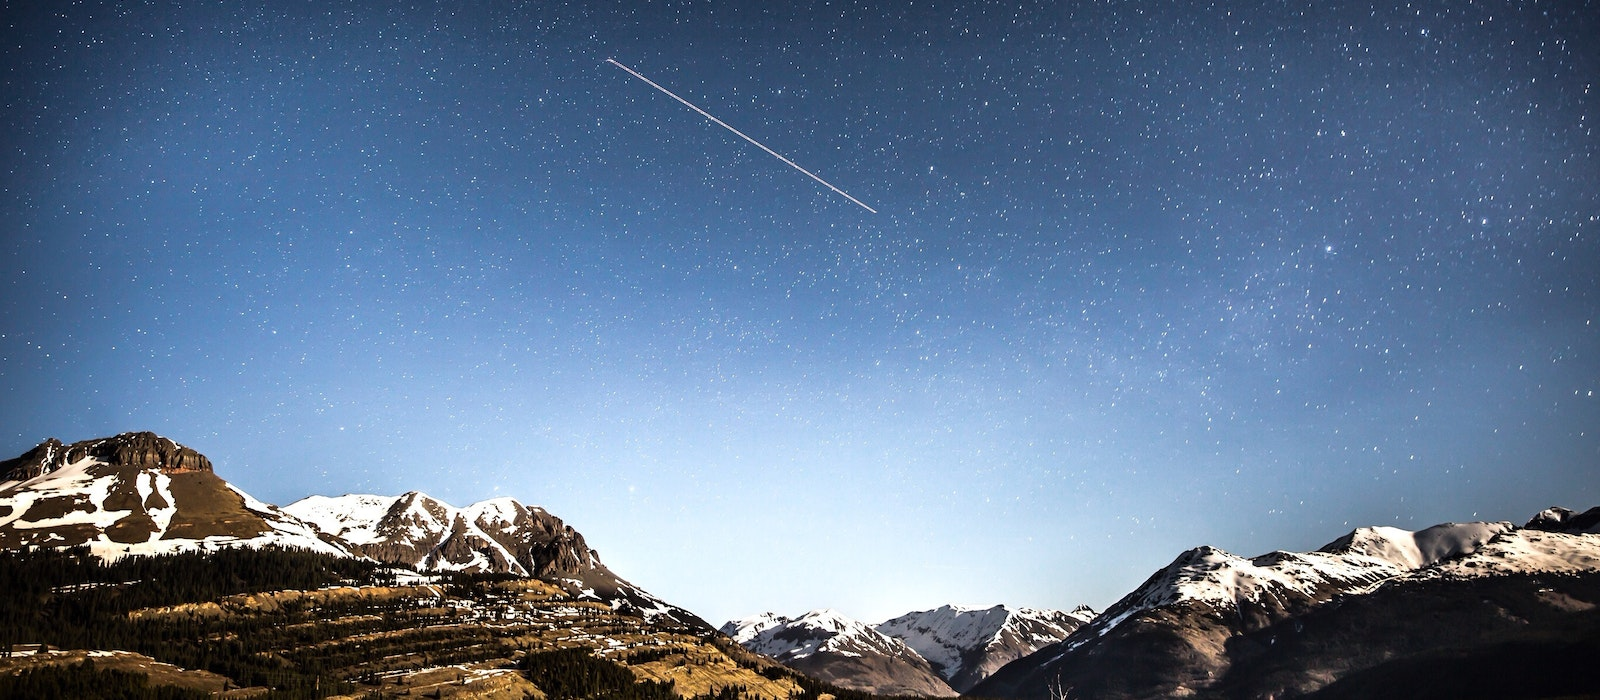 A shooting star over Durango, Colorado, where the weather is expected to be clear for January's Quadrantids meteor shower